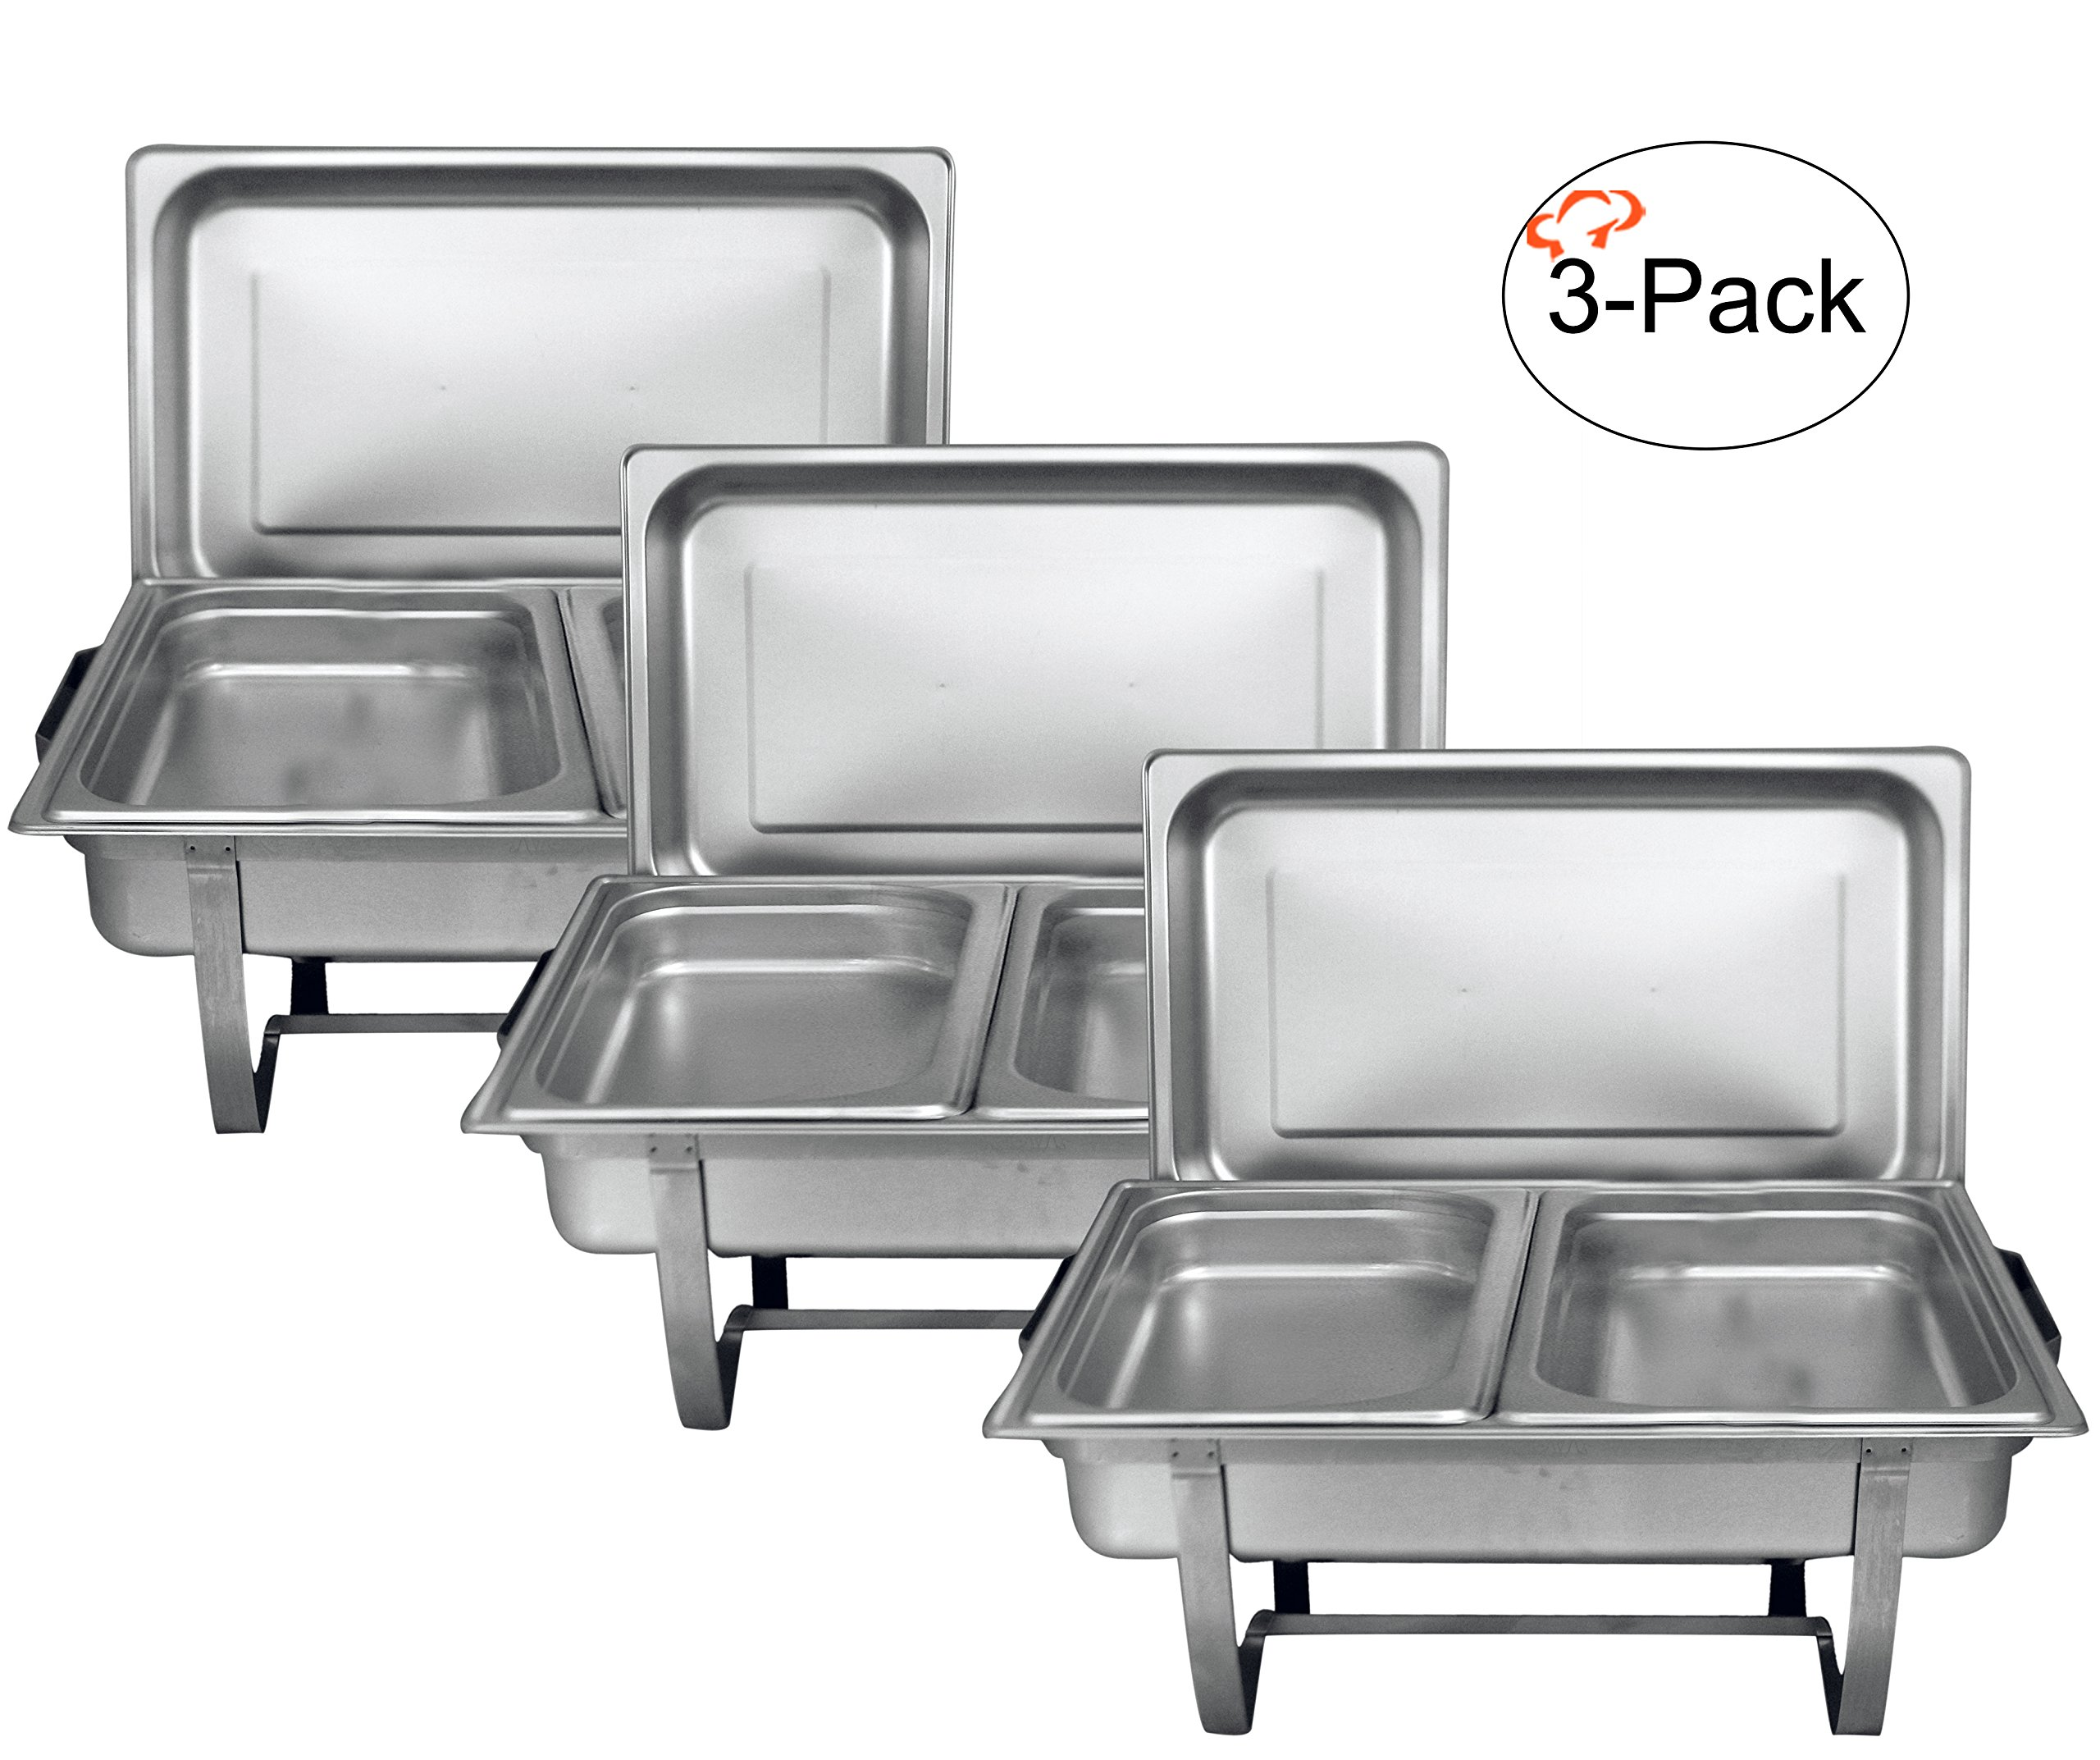 Tiger Chef 8 Quart Full Size Stainless Steel Chafer 2 Half Size Chafing Food Pans and Cool-Touch Plastic on top (3, Full Size with 1/2 Size Inserts)